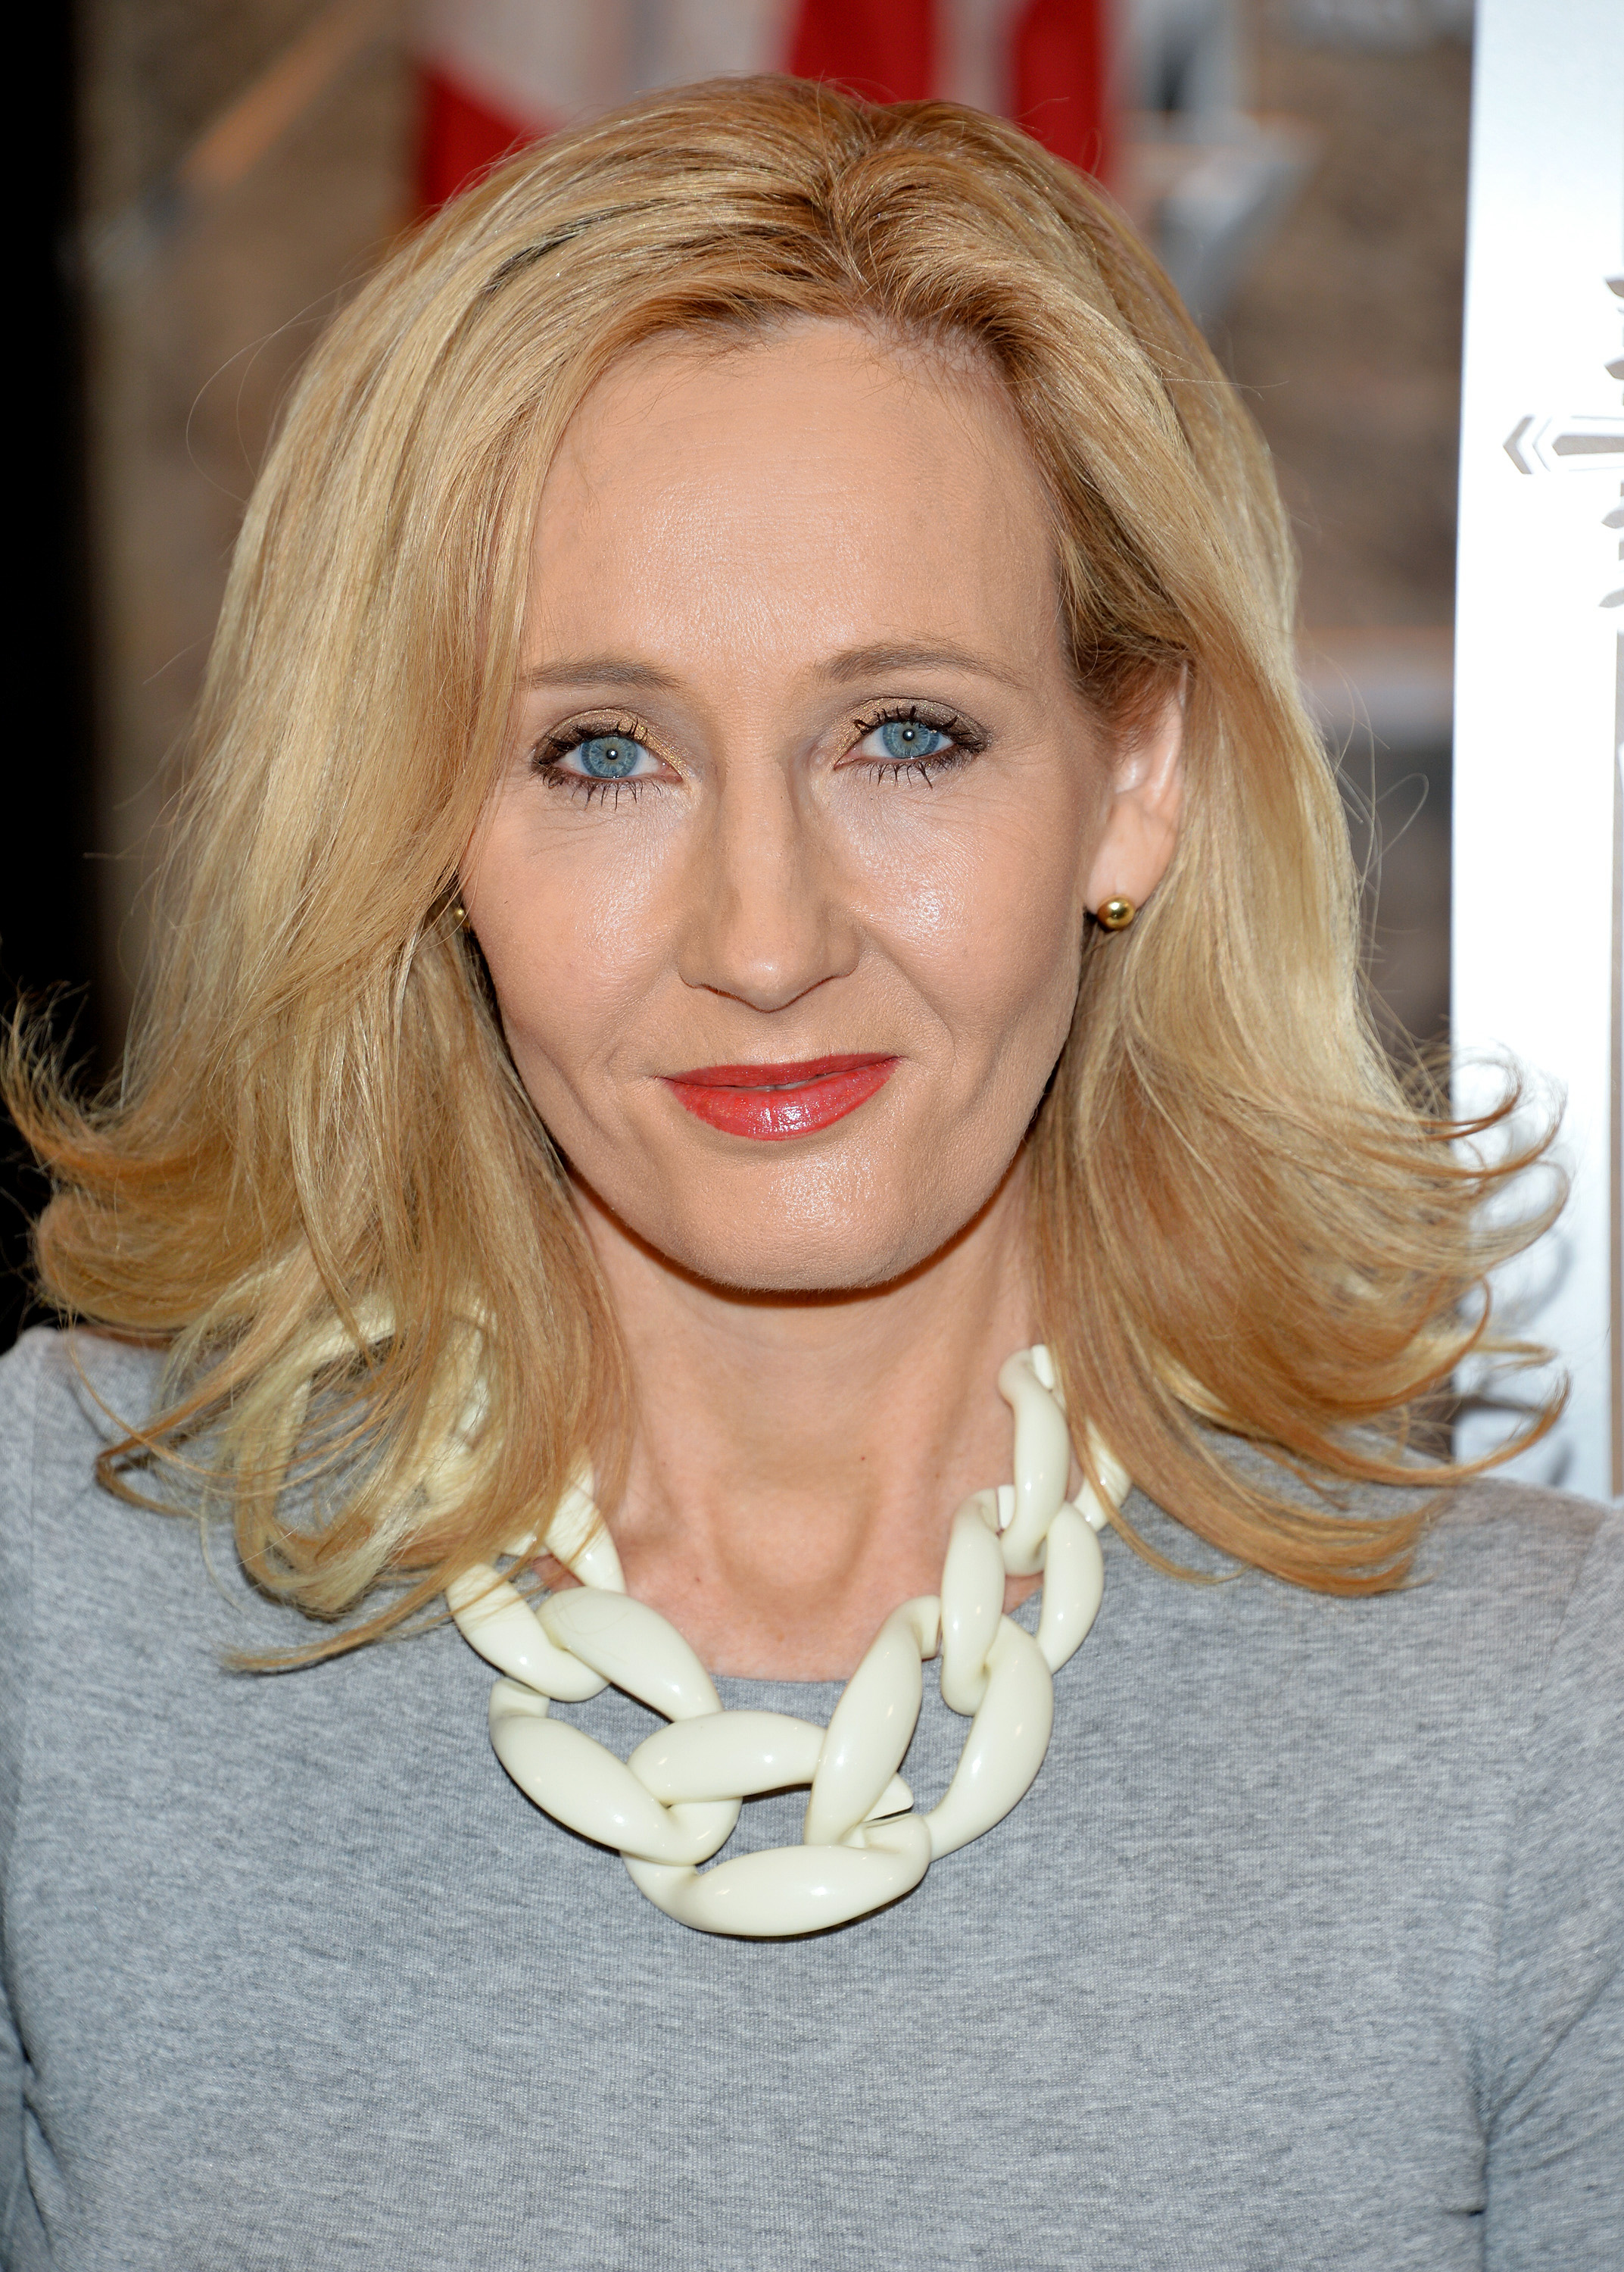 Author J.K. Rowling at the Empire State Building in New York City on April 9, 2015.